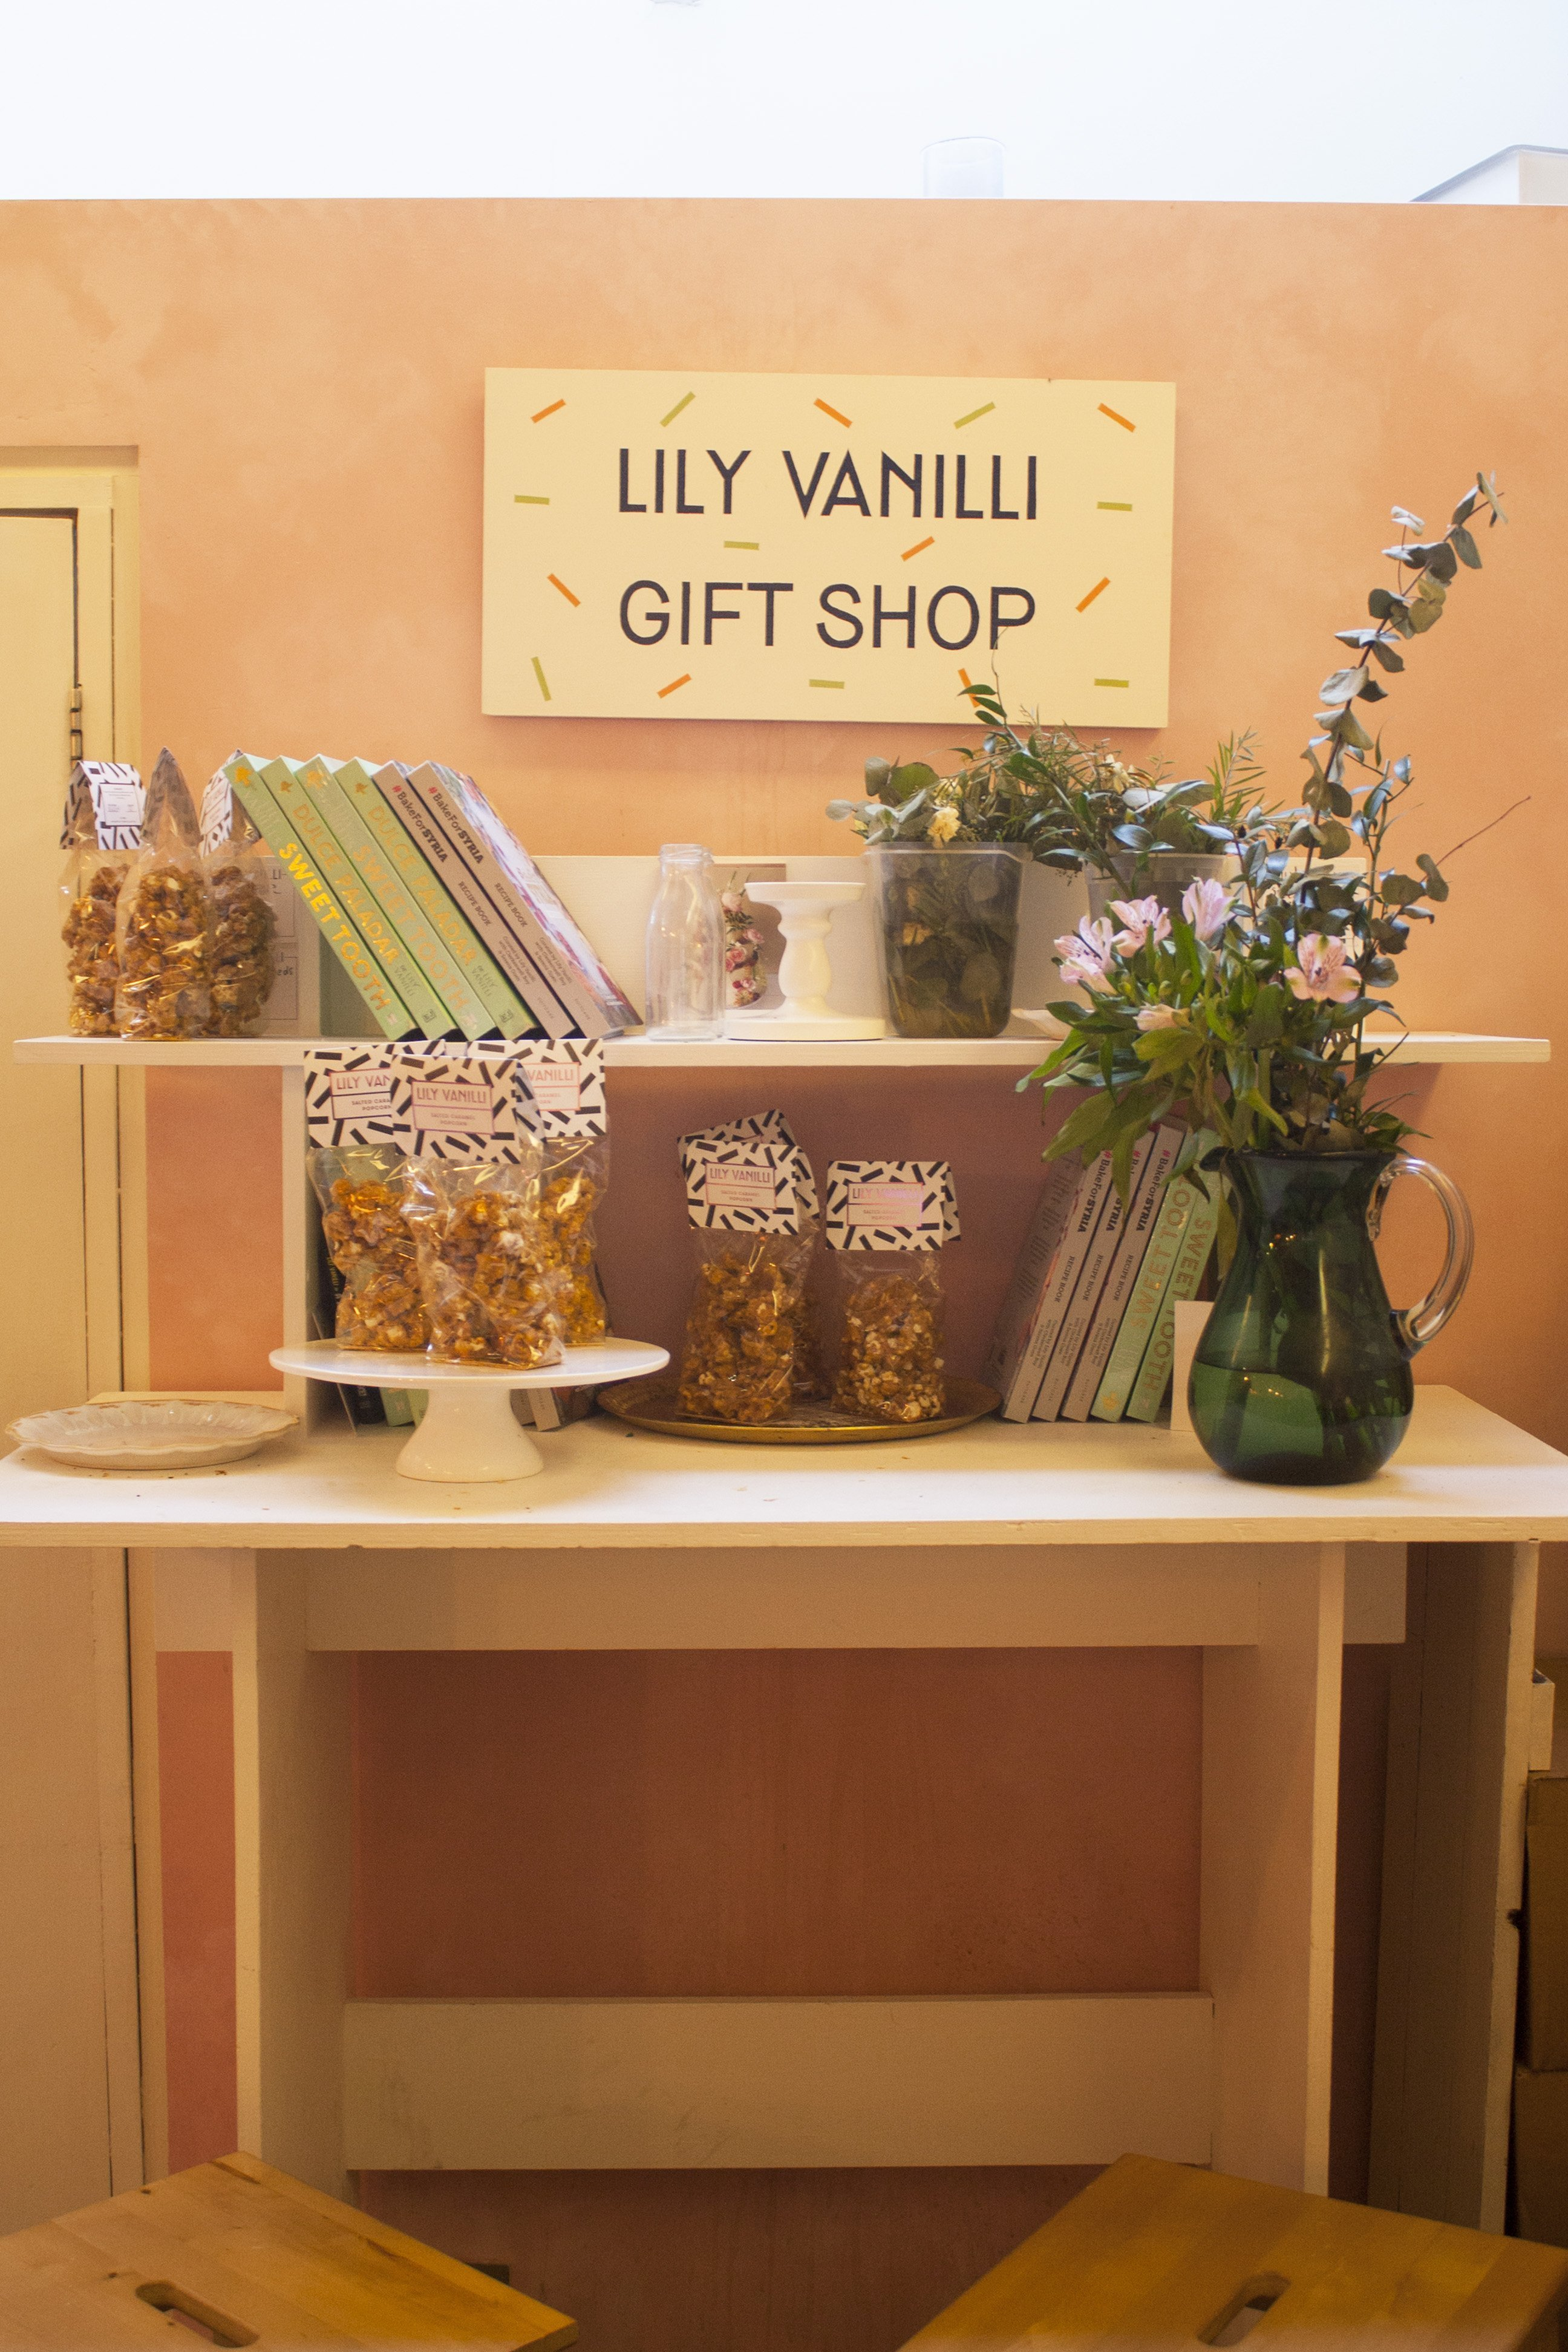 Lily Vanilli Bakery gift shop